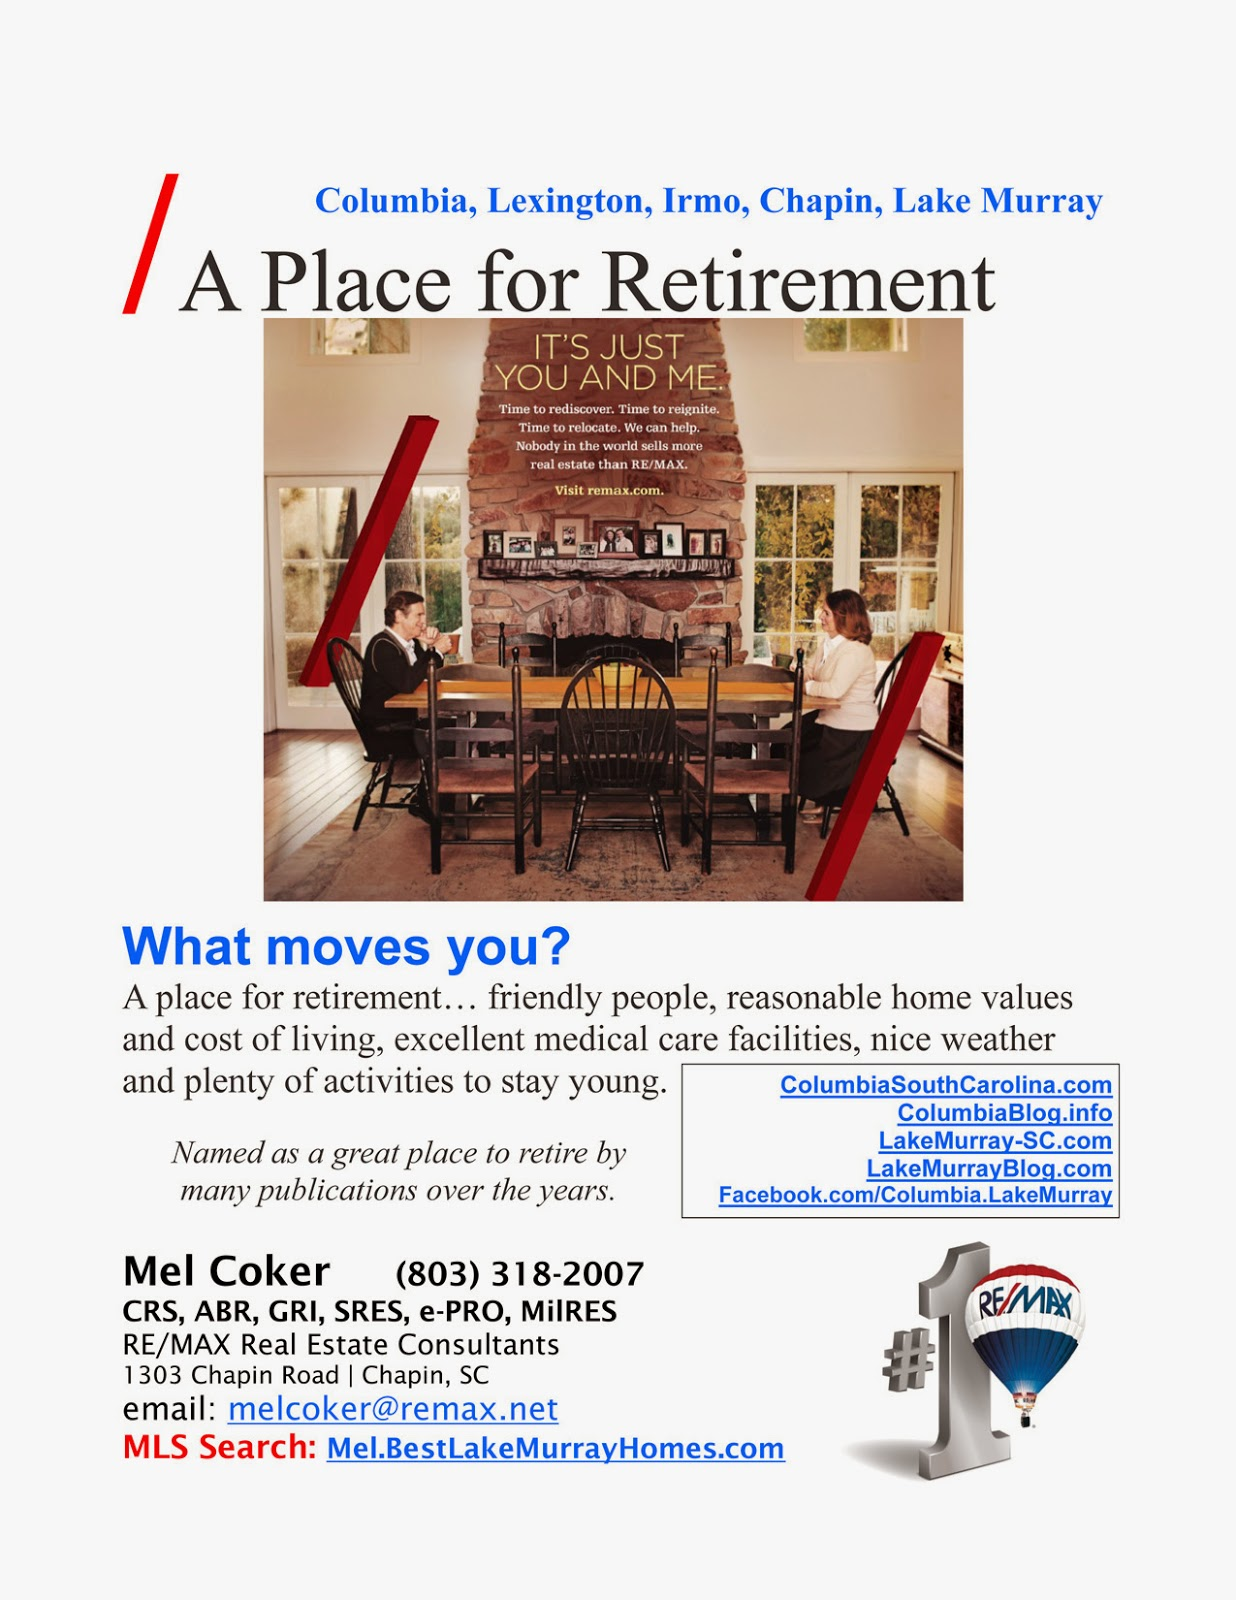 http://www.columbiasouthcarolina.com/homes/retirement.html